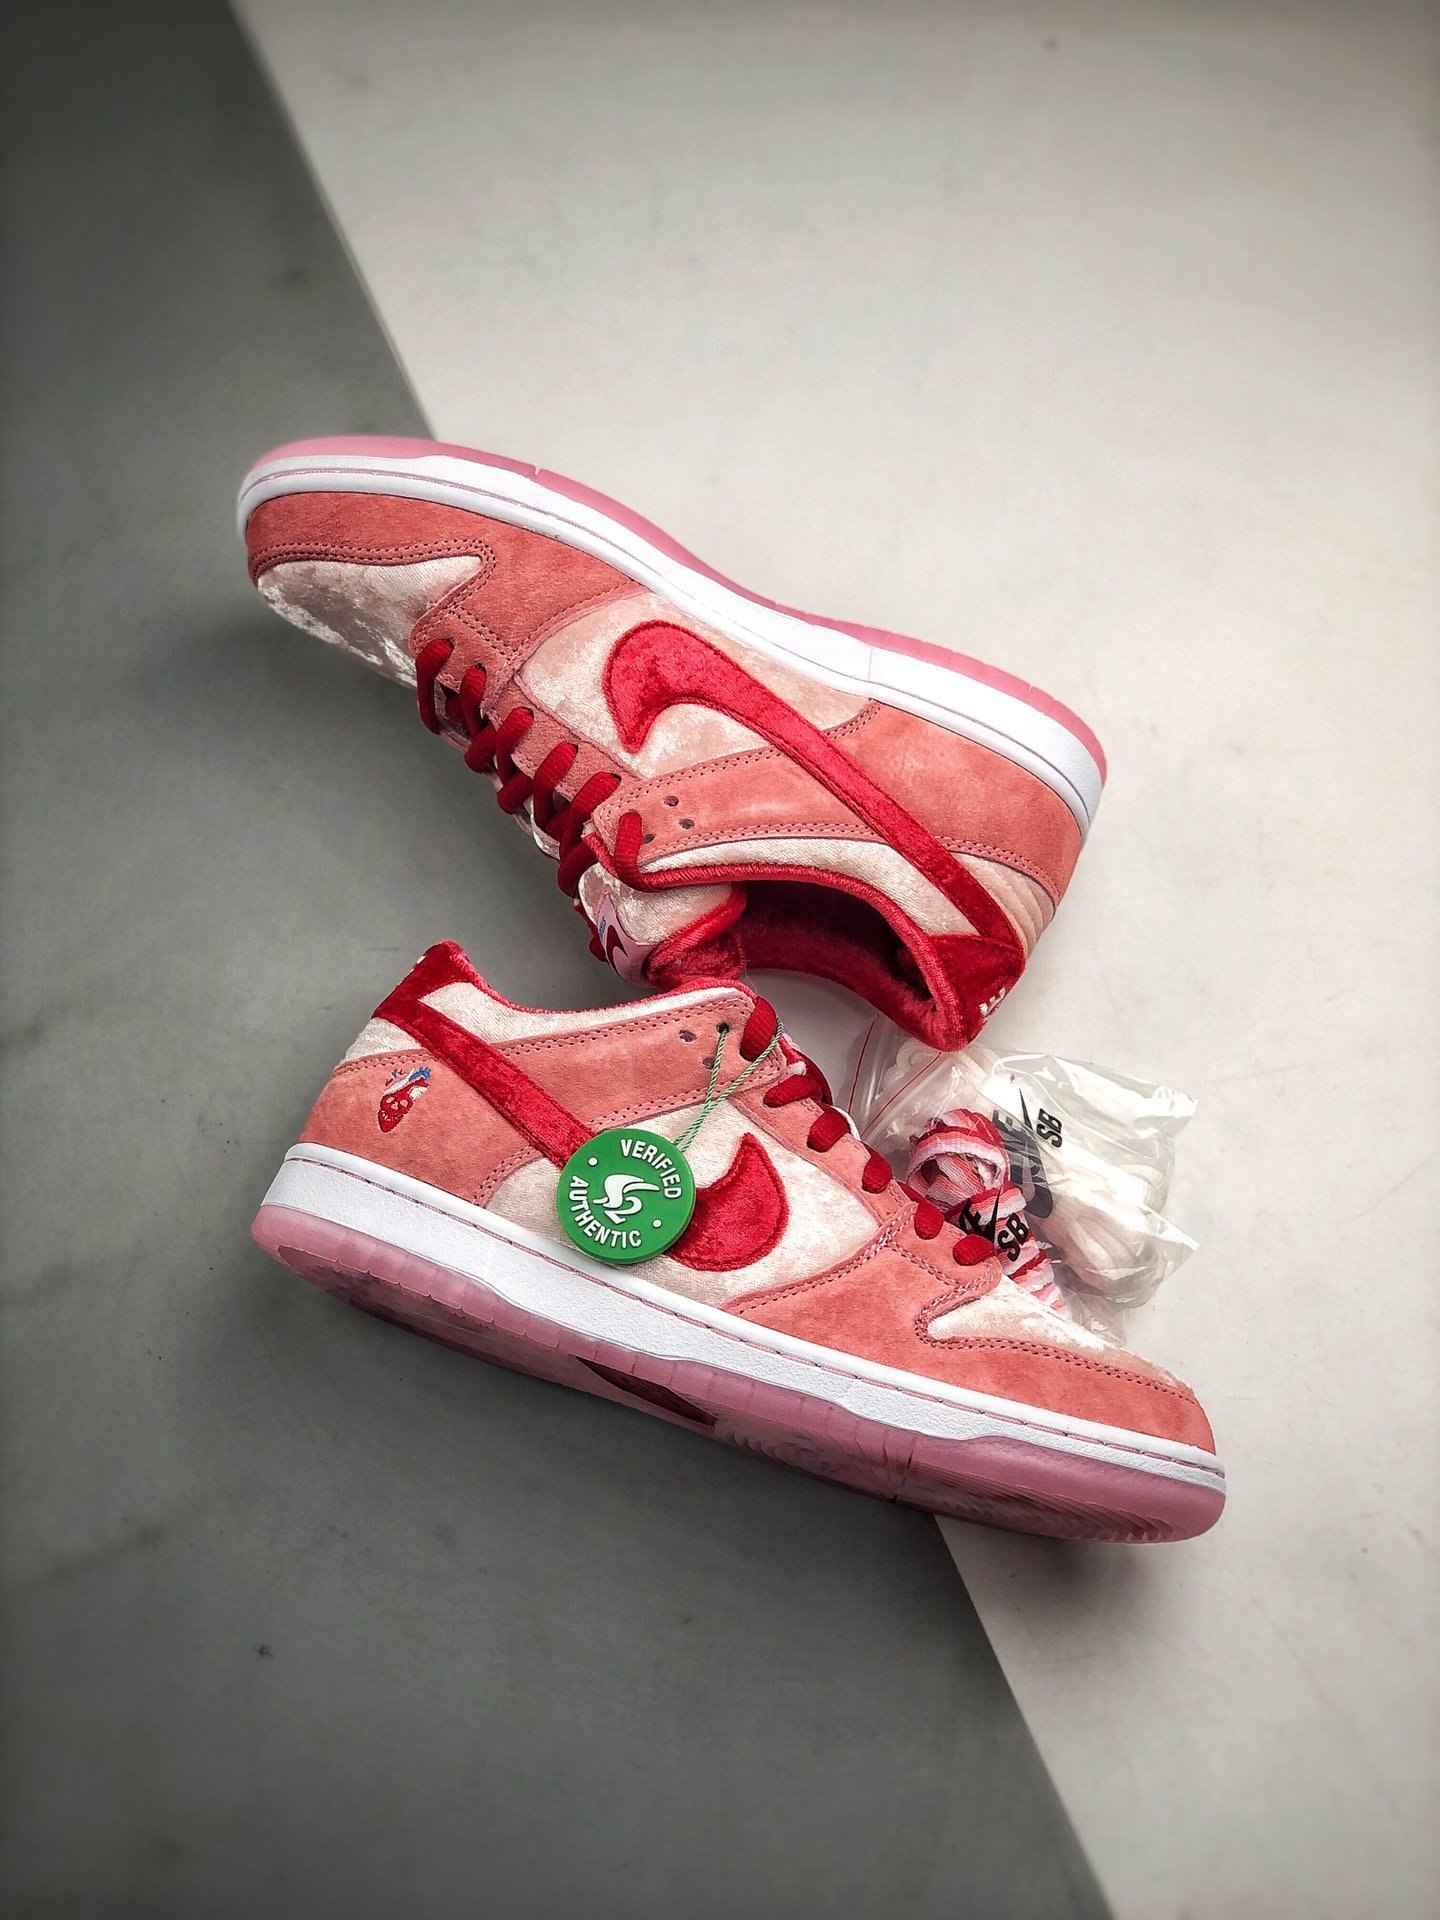 Women's Running Weapon SB DUNK LOW PRO QS x Strangelove CT2552-800 Shoes 006